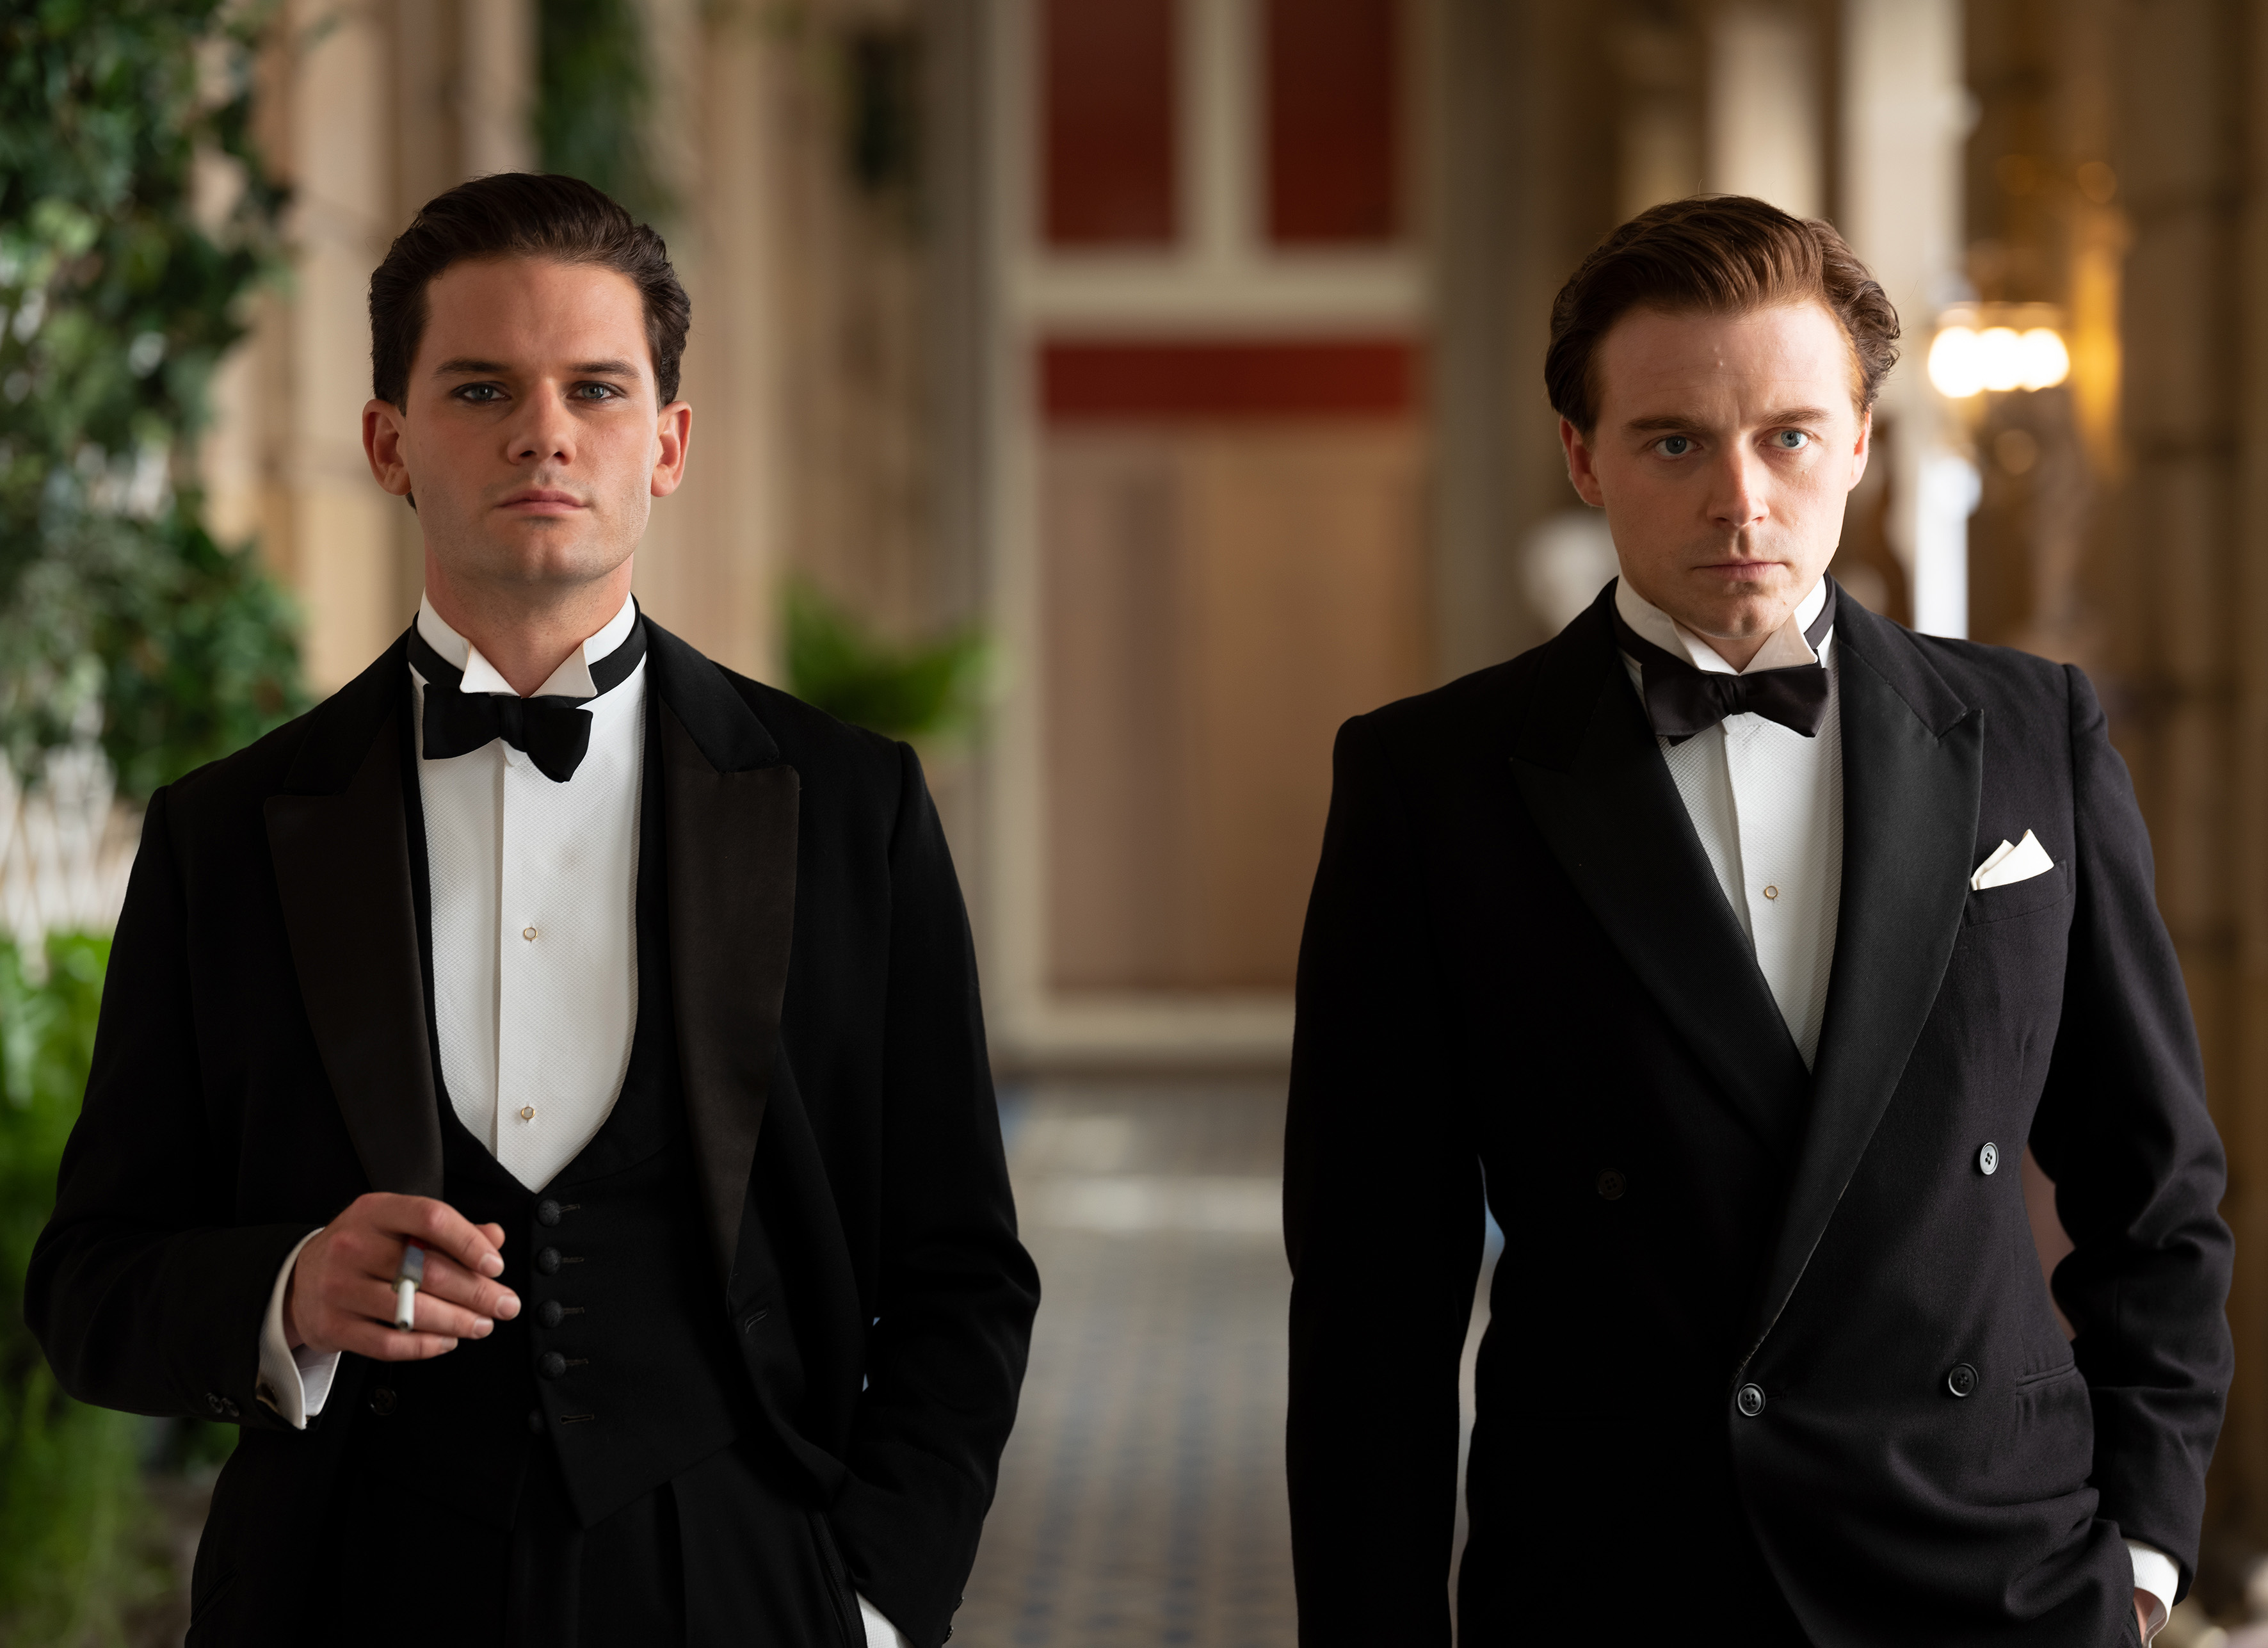 Wearing tuxedos, Jeremy Irvine and Jack Lowden stand together in a formal venue looking in the same direction out-of-frame